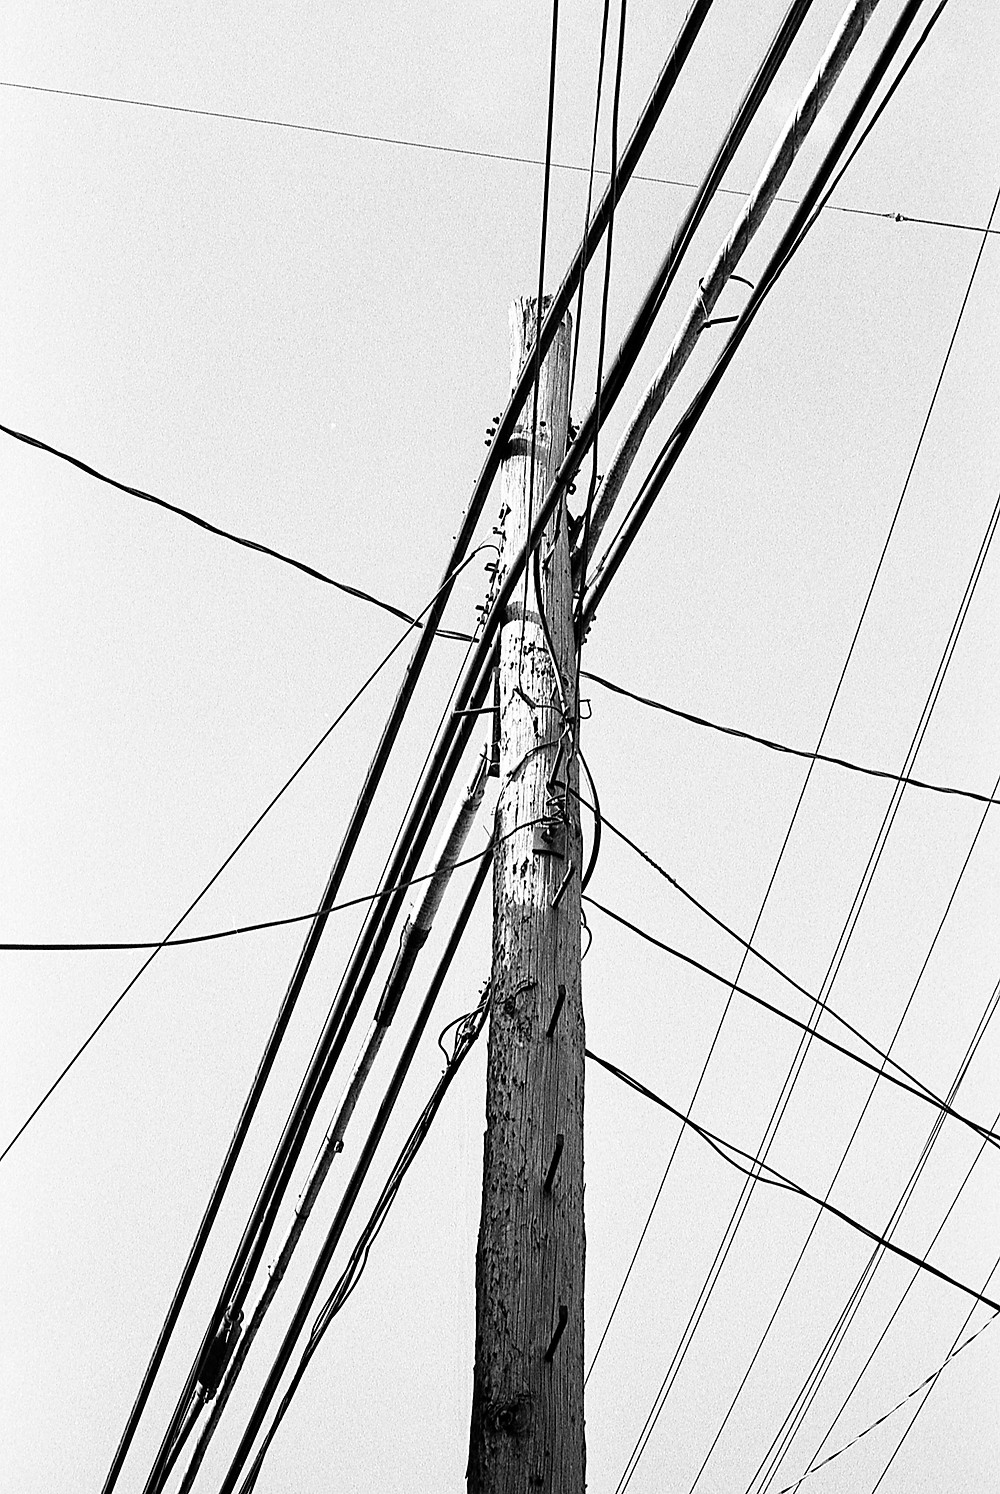 Telephone pole in Ellicott City, Maryland